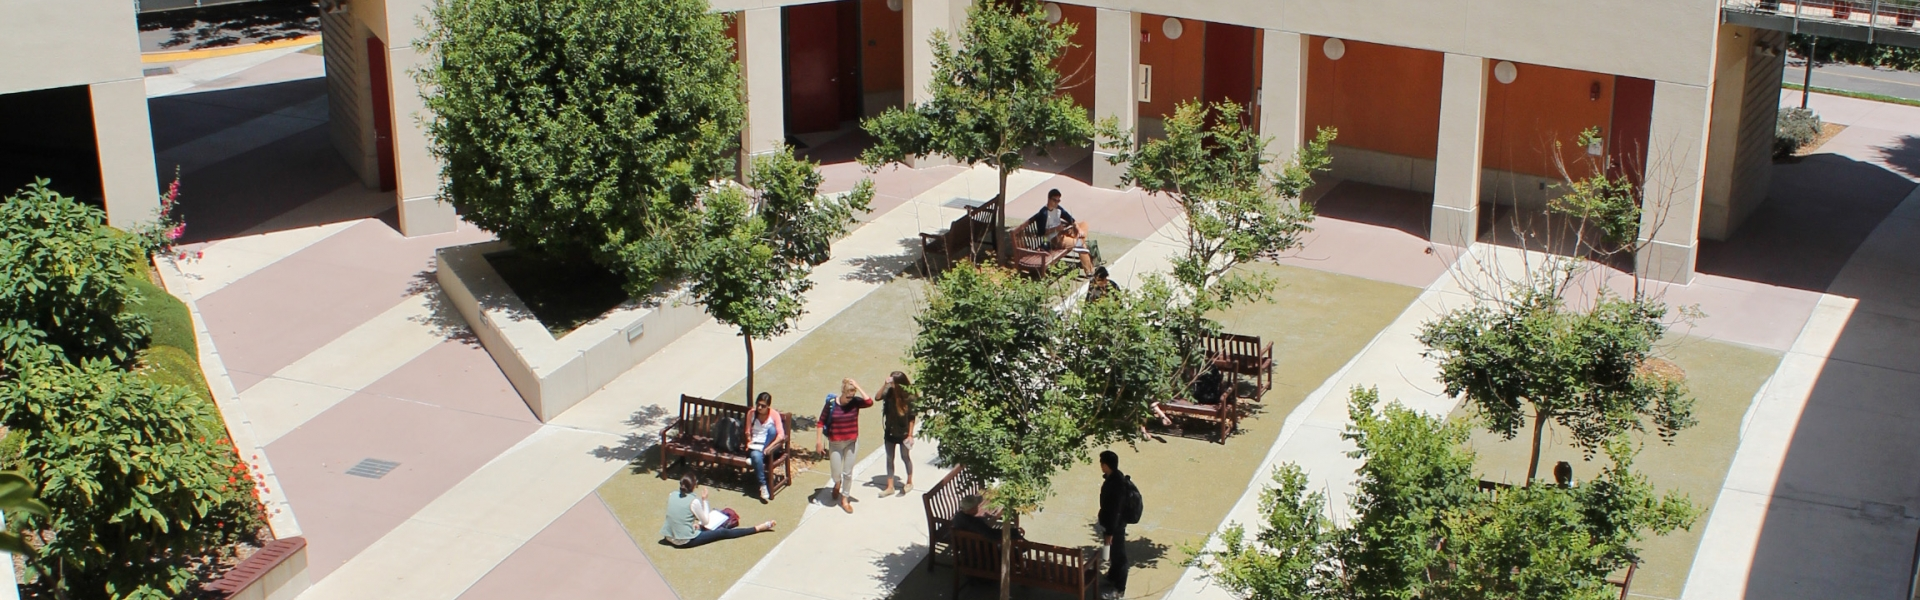 Courtyard exterior with trees